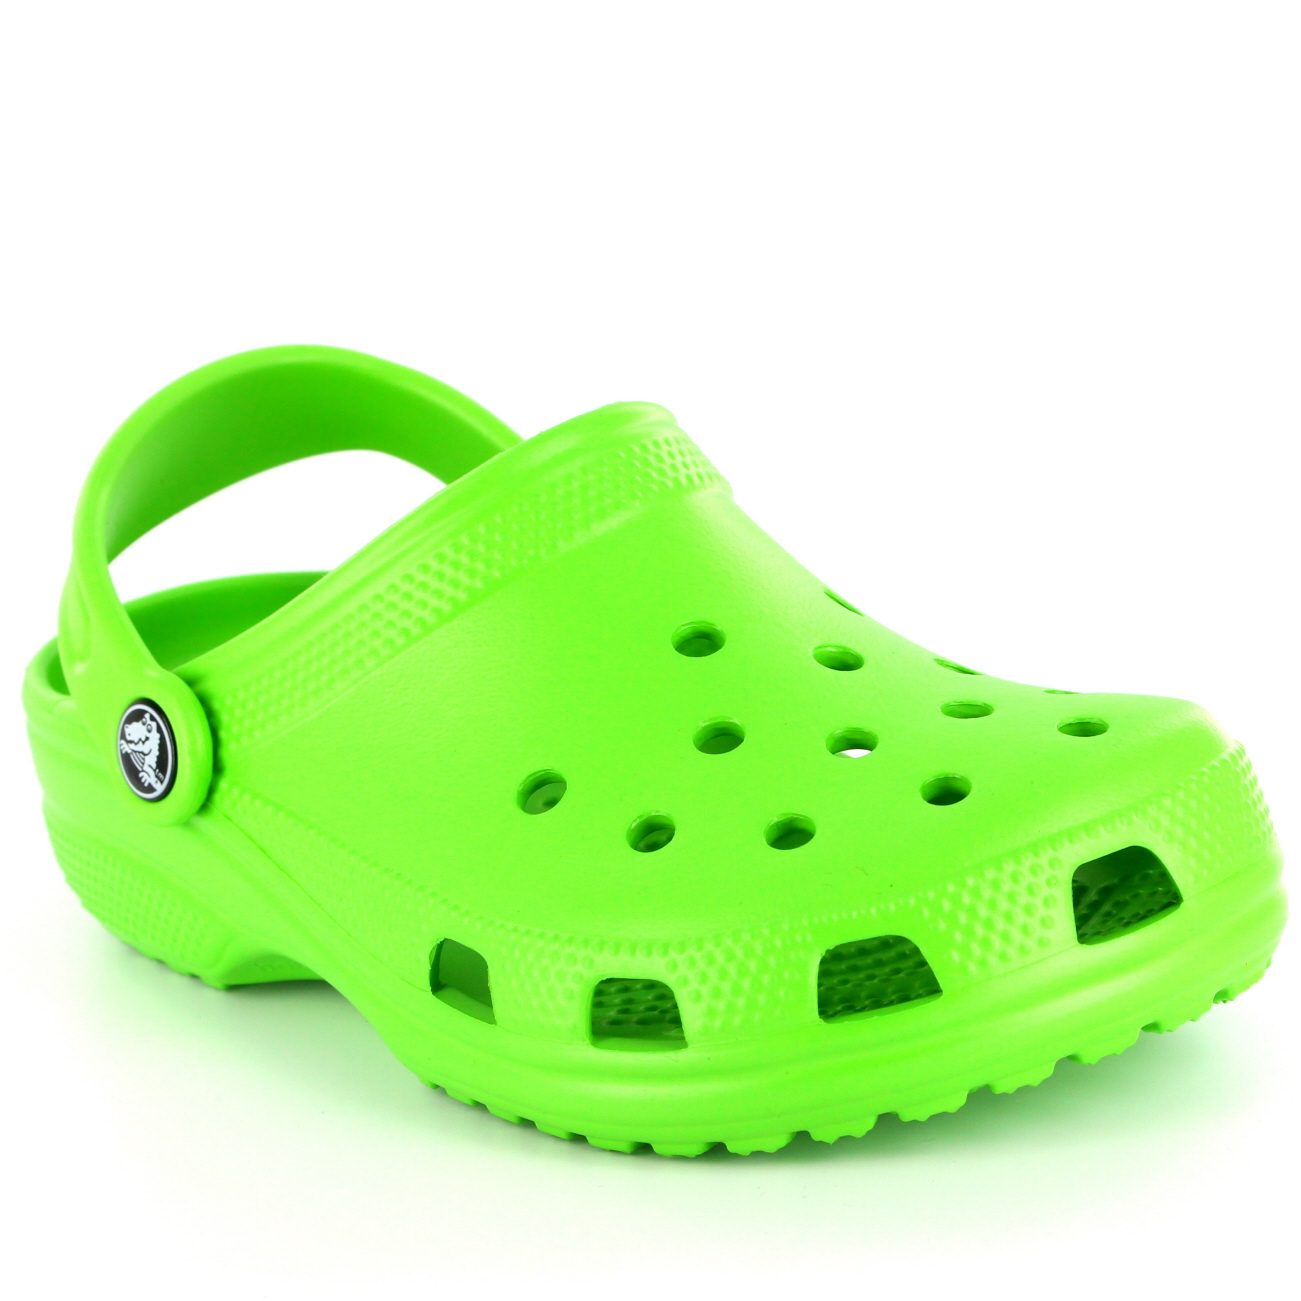 Crocs Cayman Classic Sandals